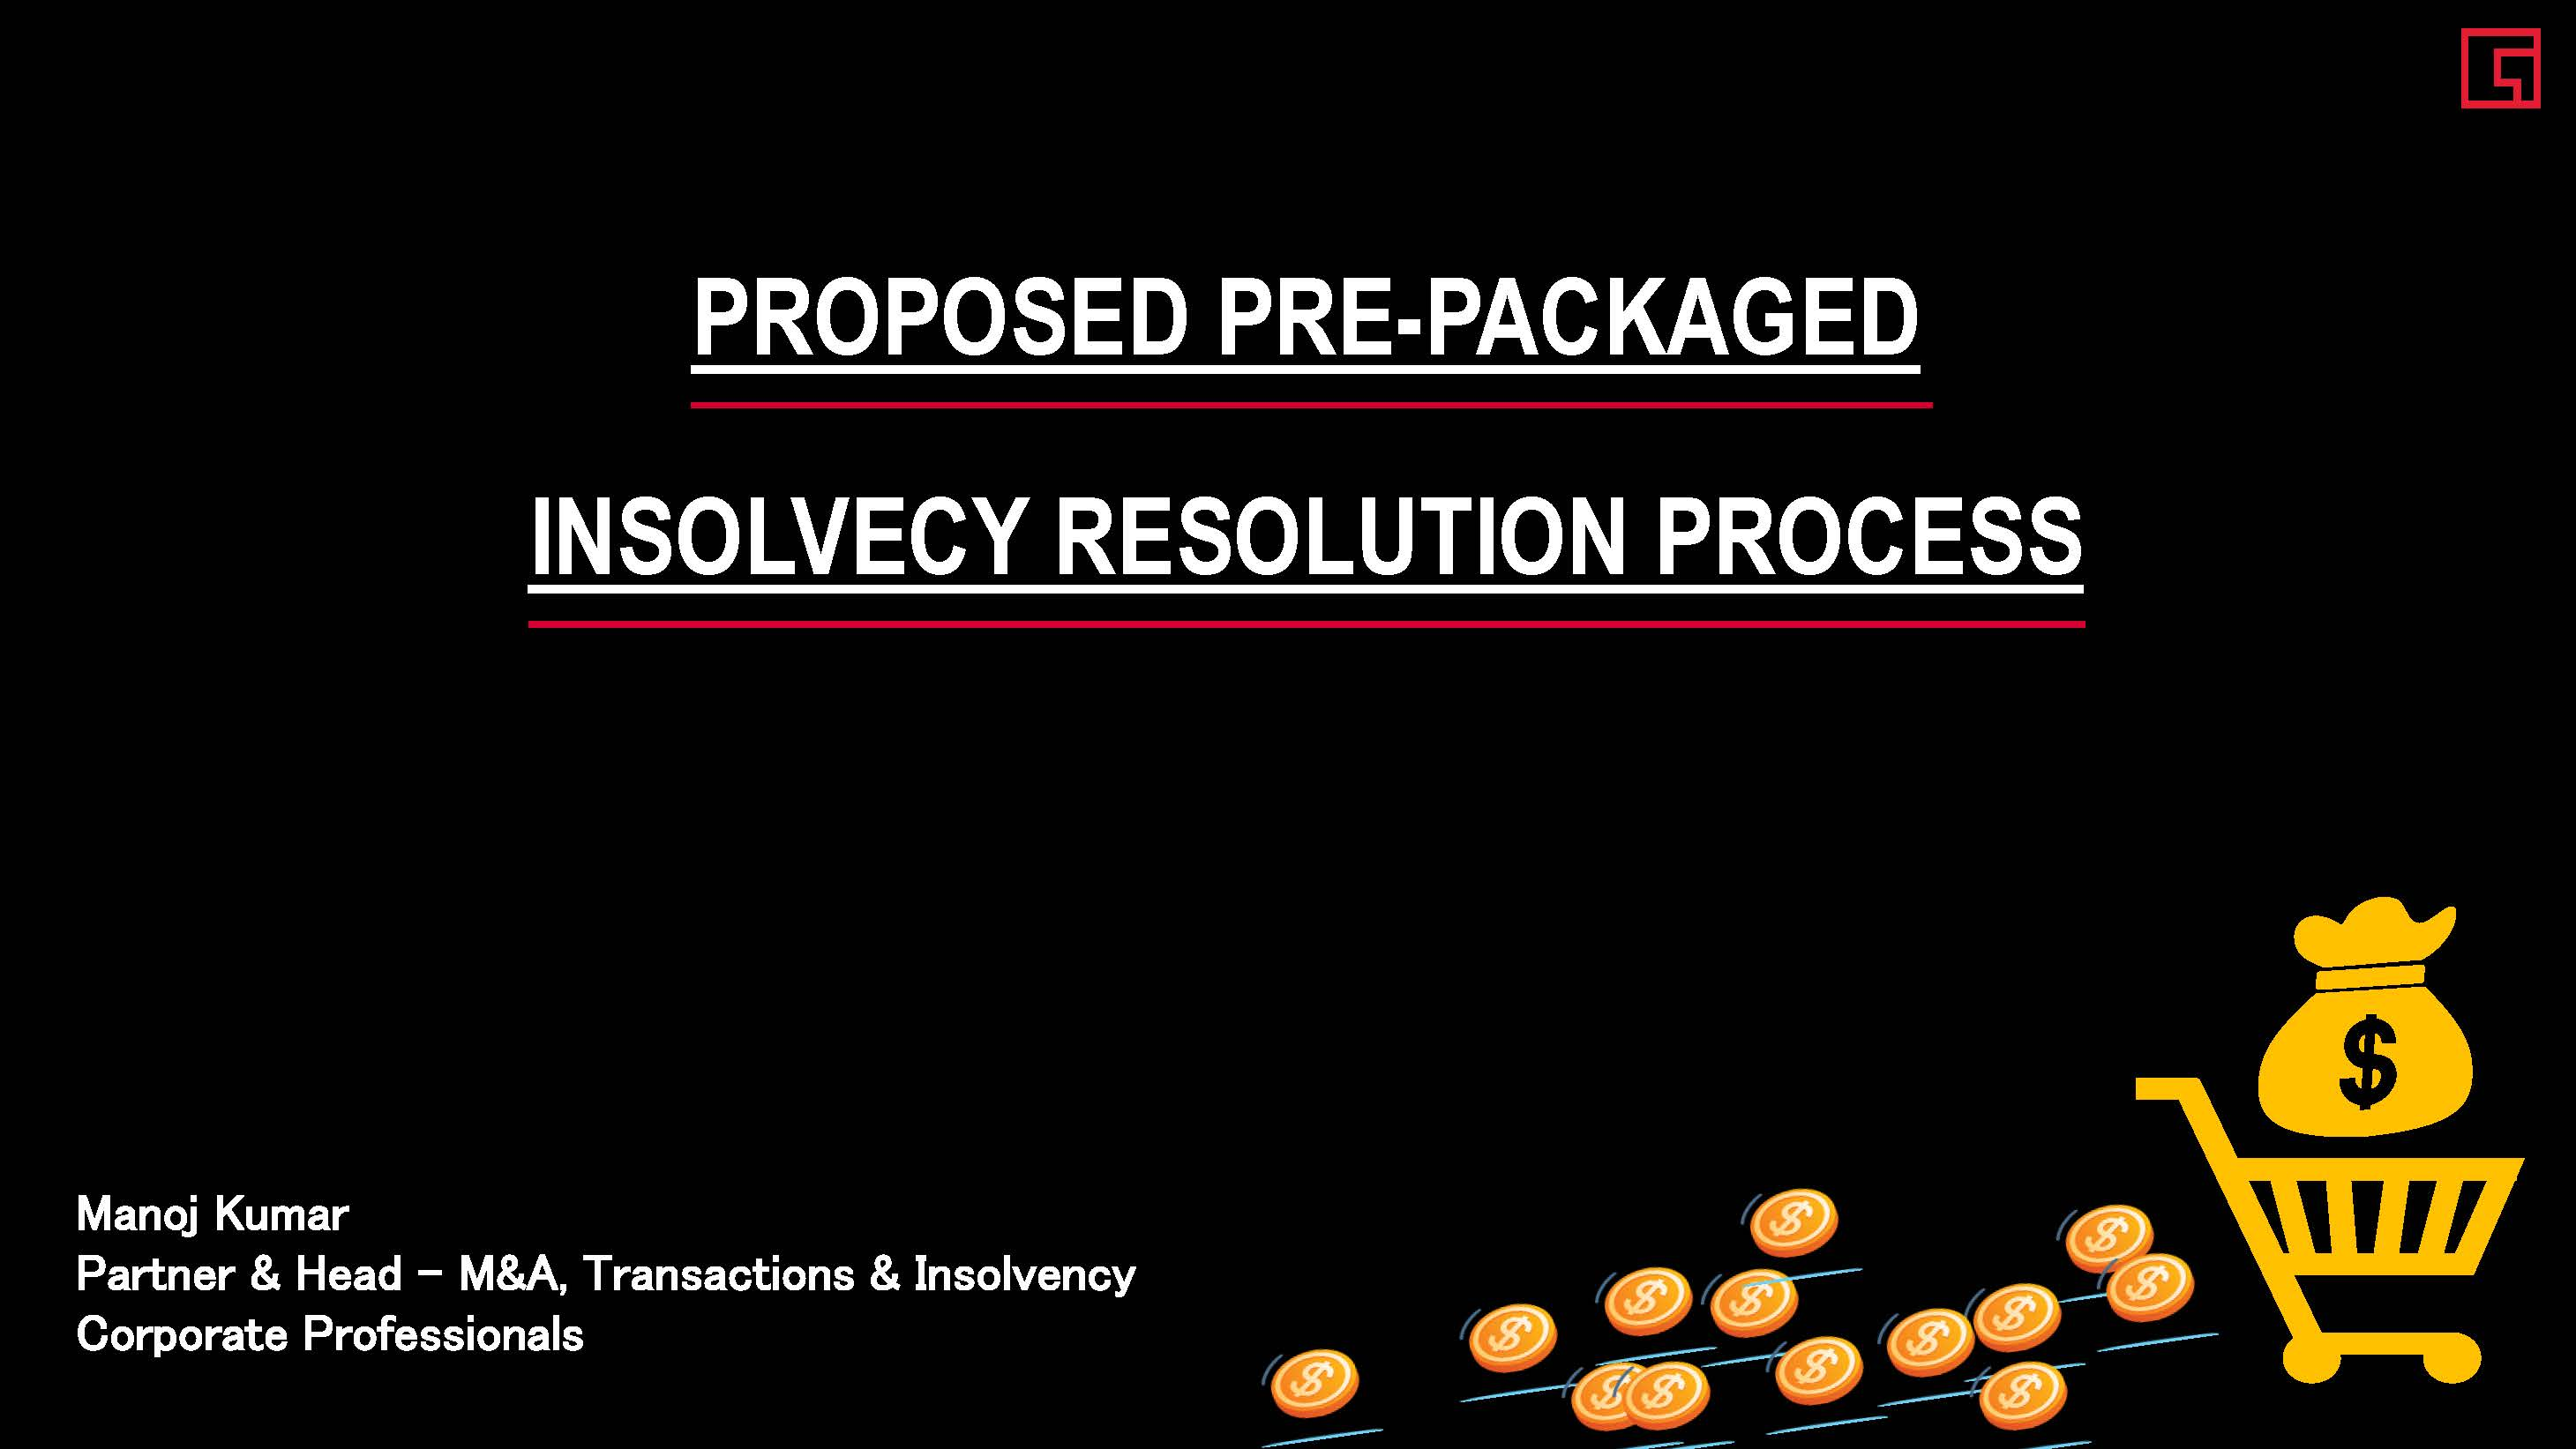 Proposed Pre-packaged Insolvency Resolution Process